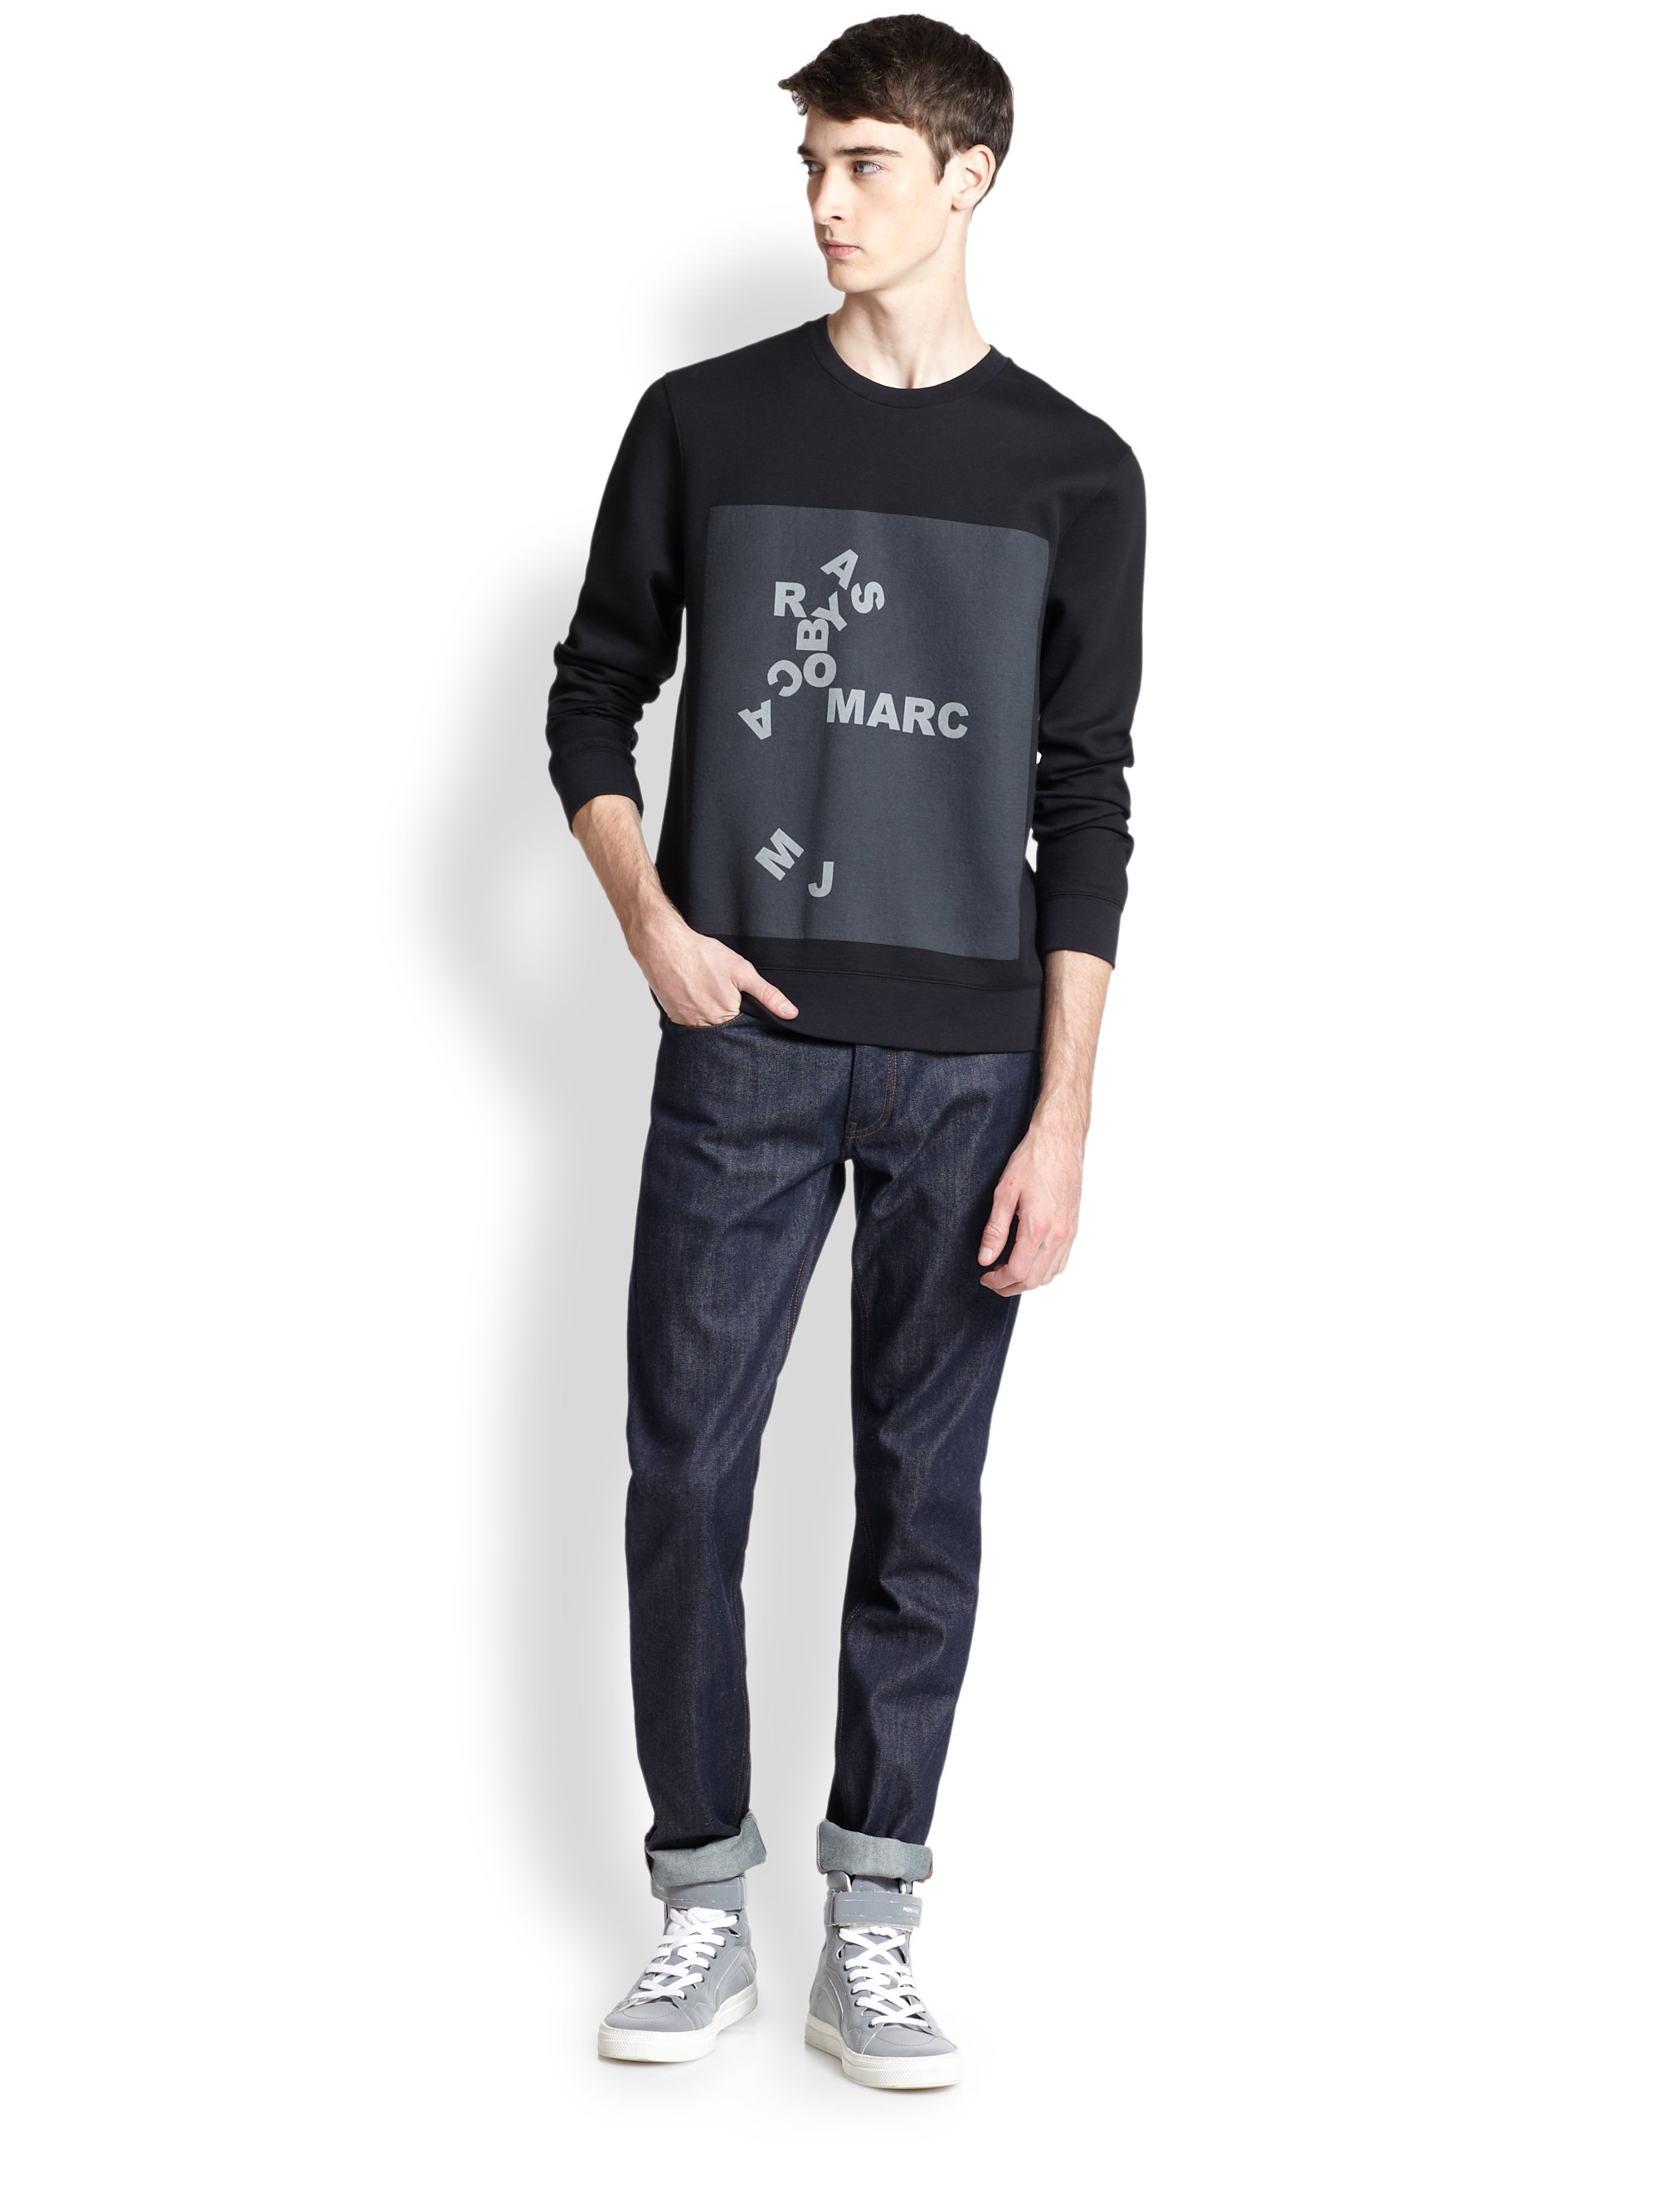 Marc by marc jacobs Jumbled Logo Sweatshirt in Black for ...